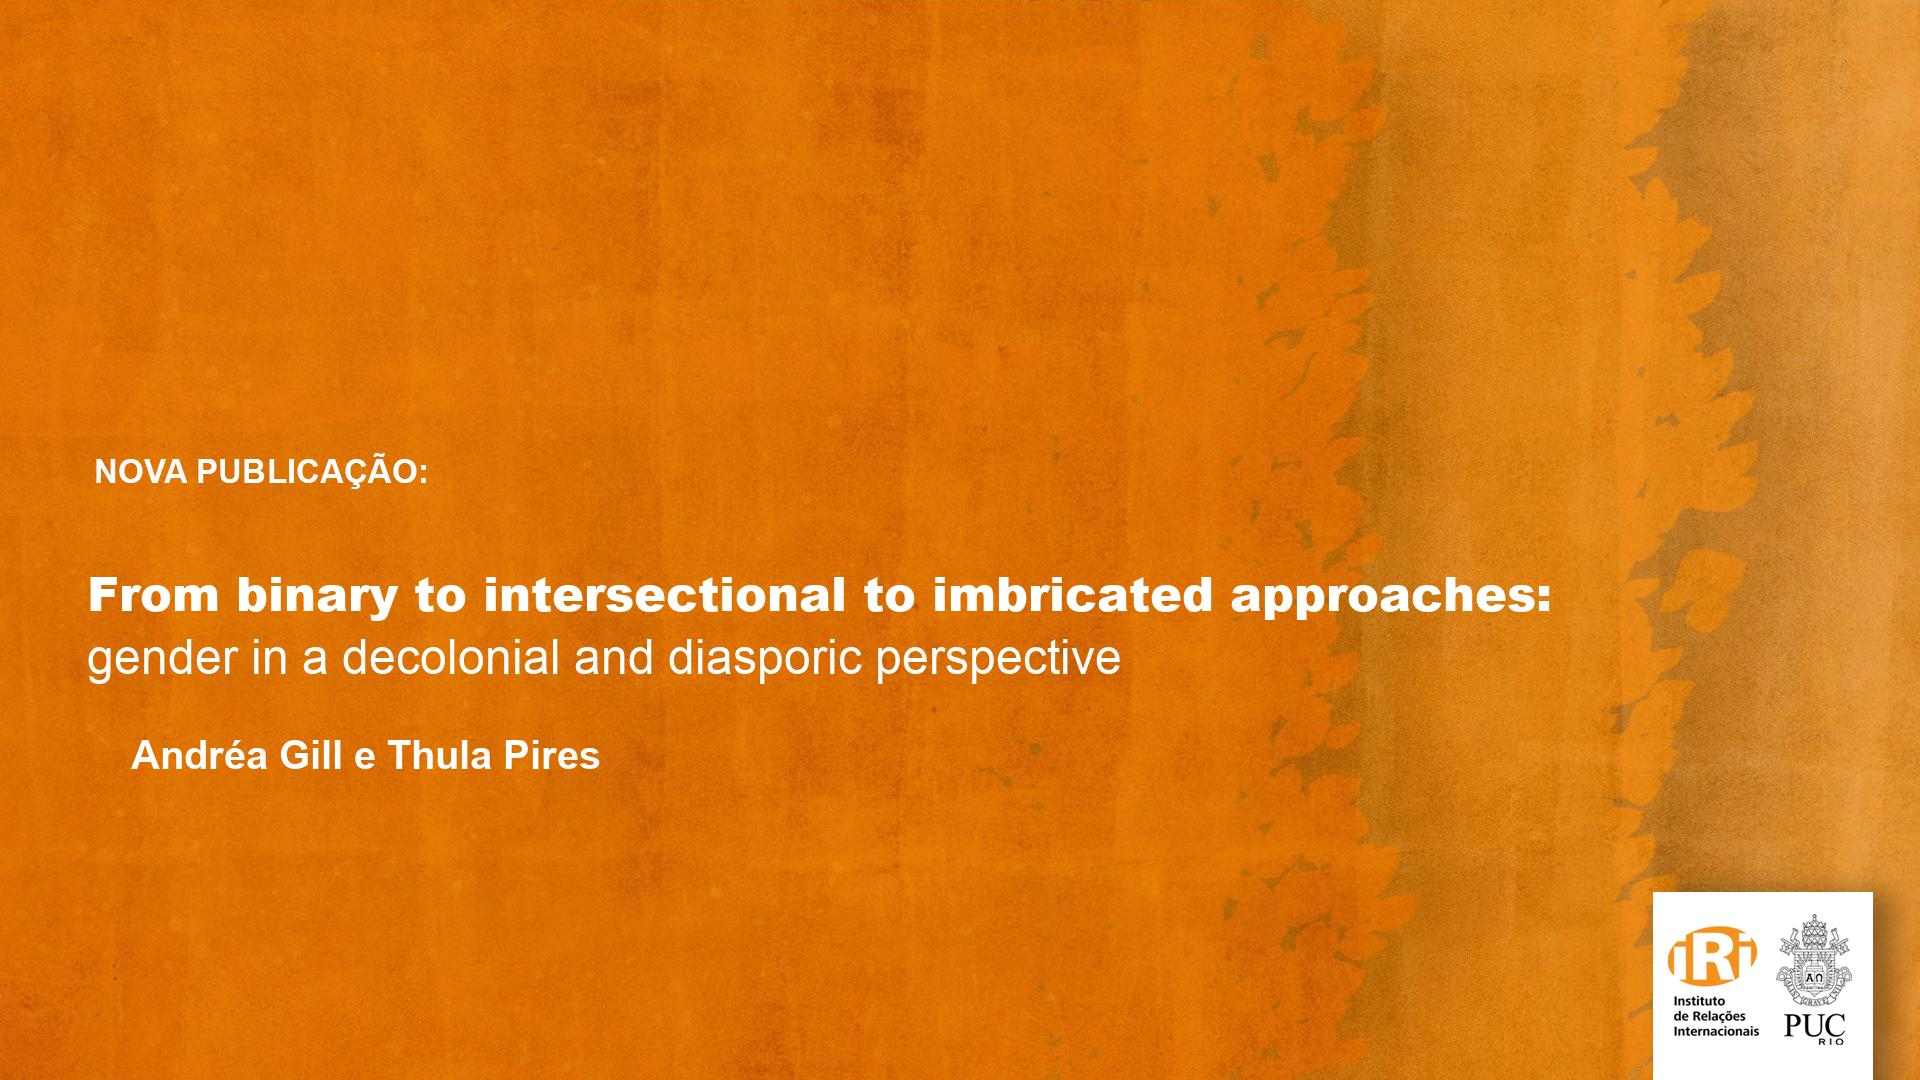 From binary to intersectional to imbricated approaches: gender in a decolonial and diasporic perspective